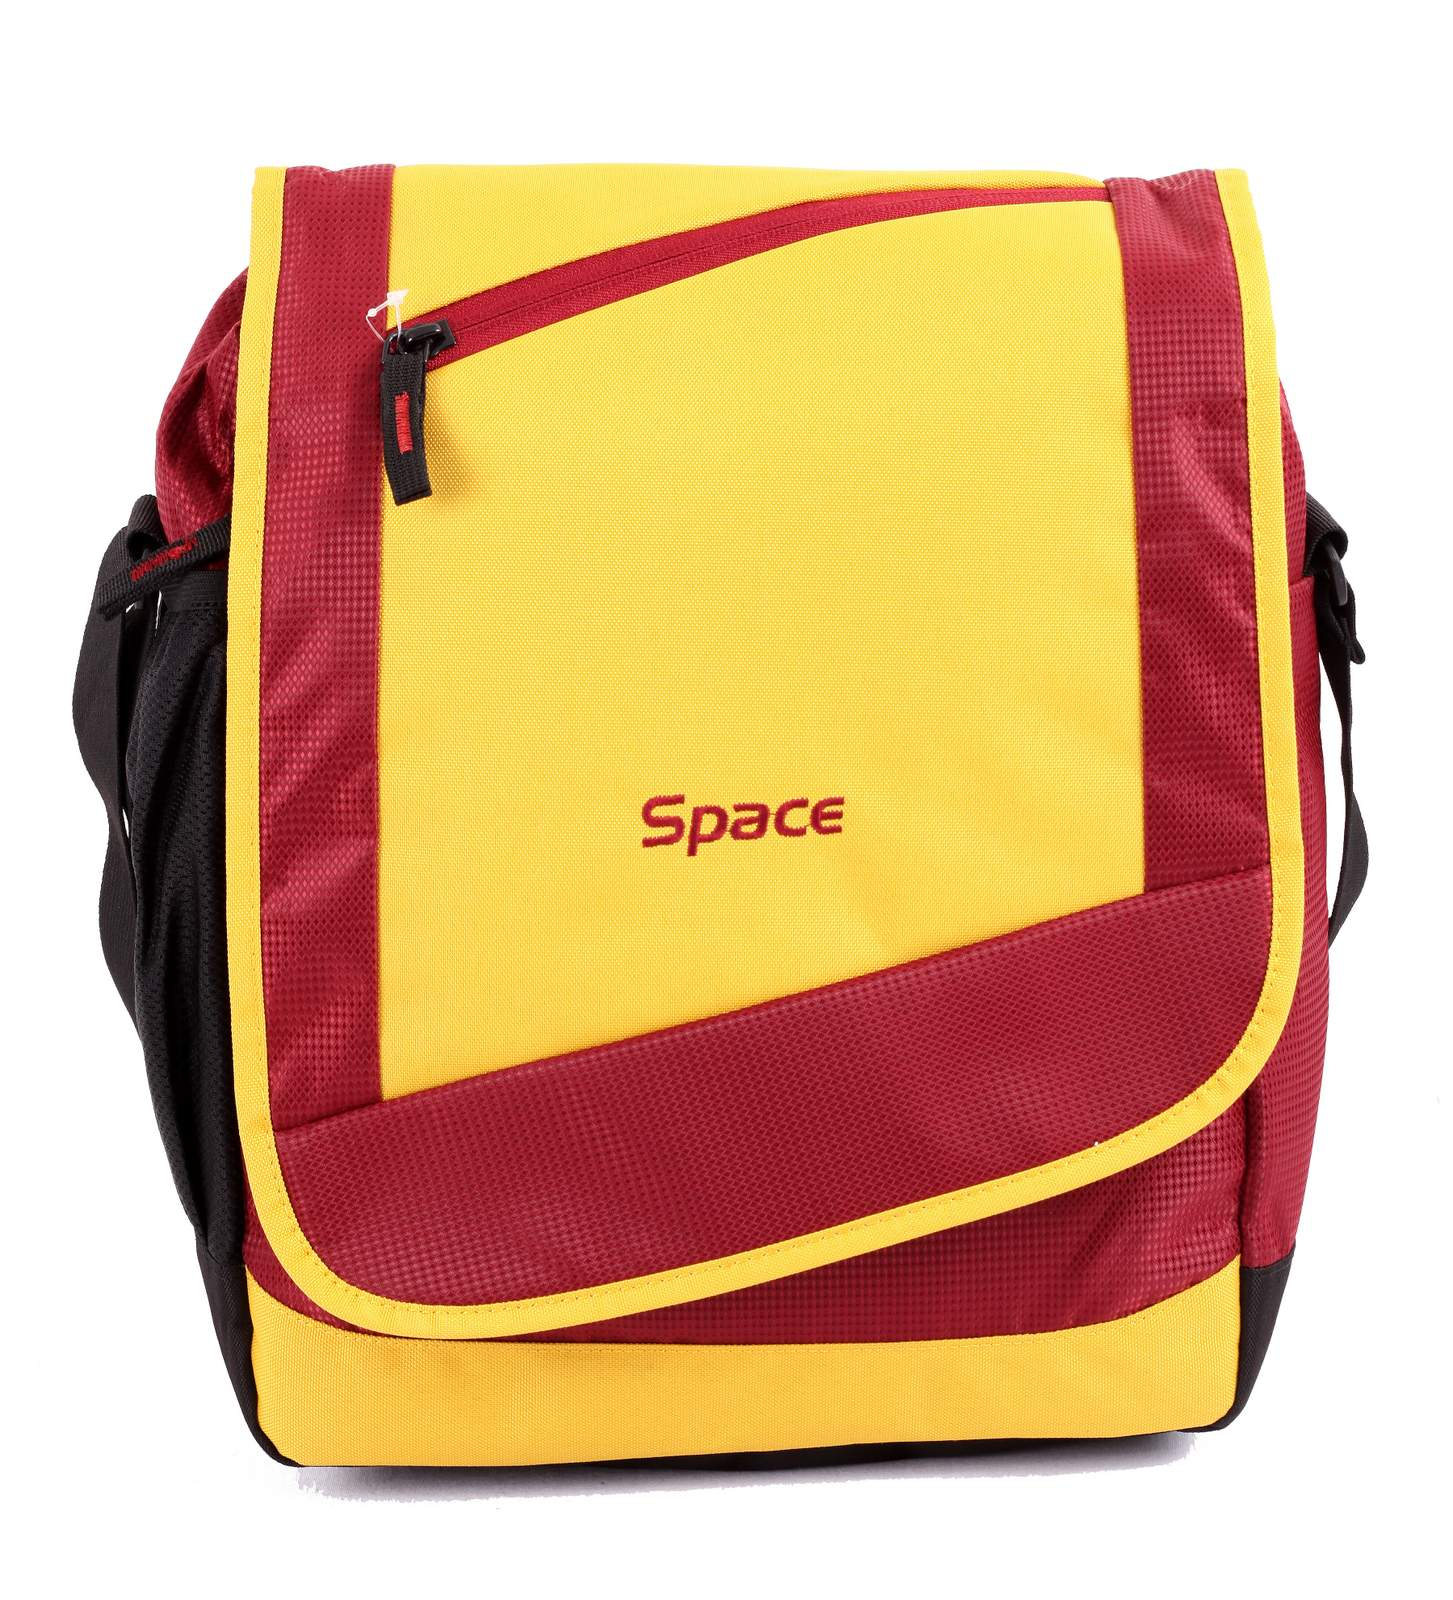 Space Messenger Bags in Bengaluru